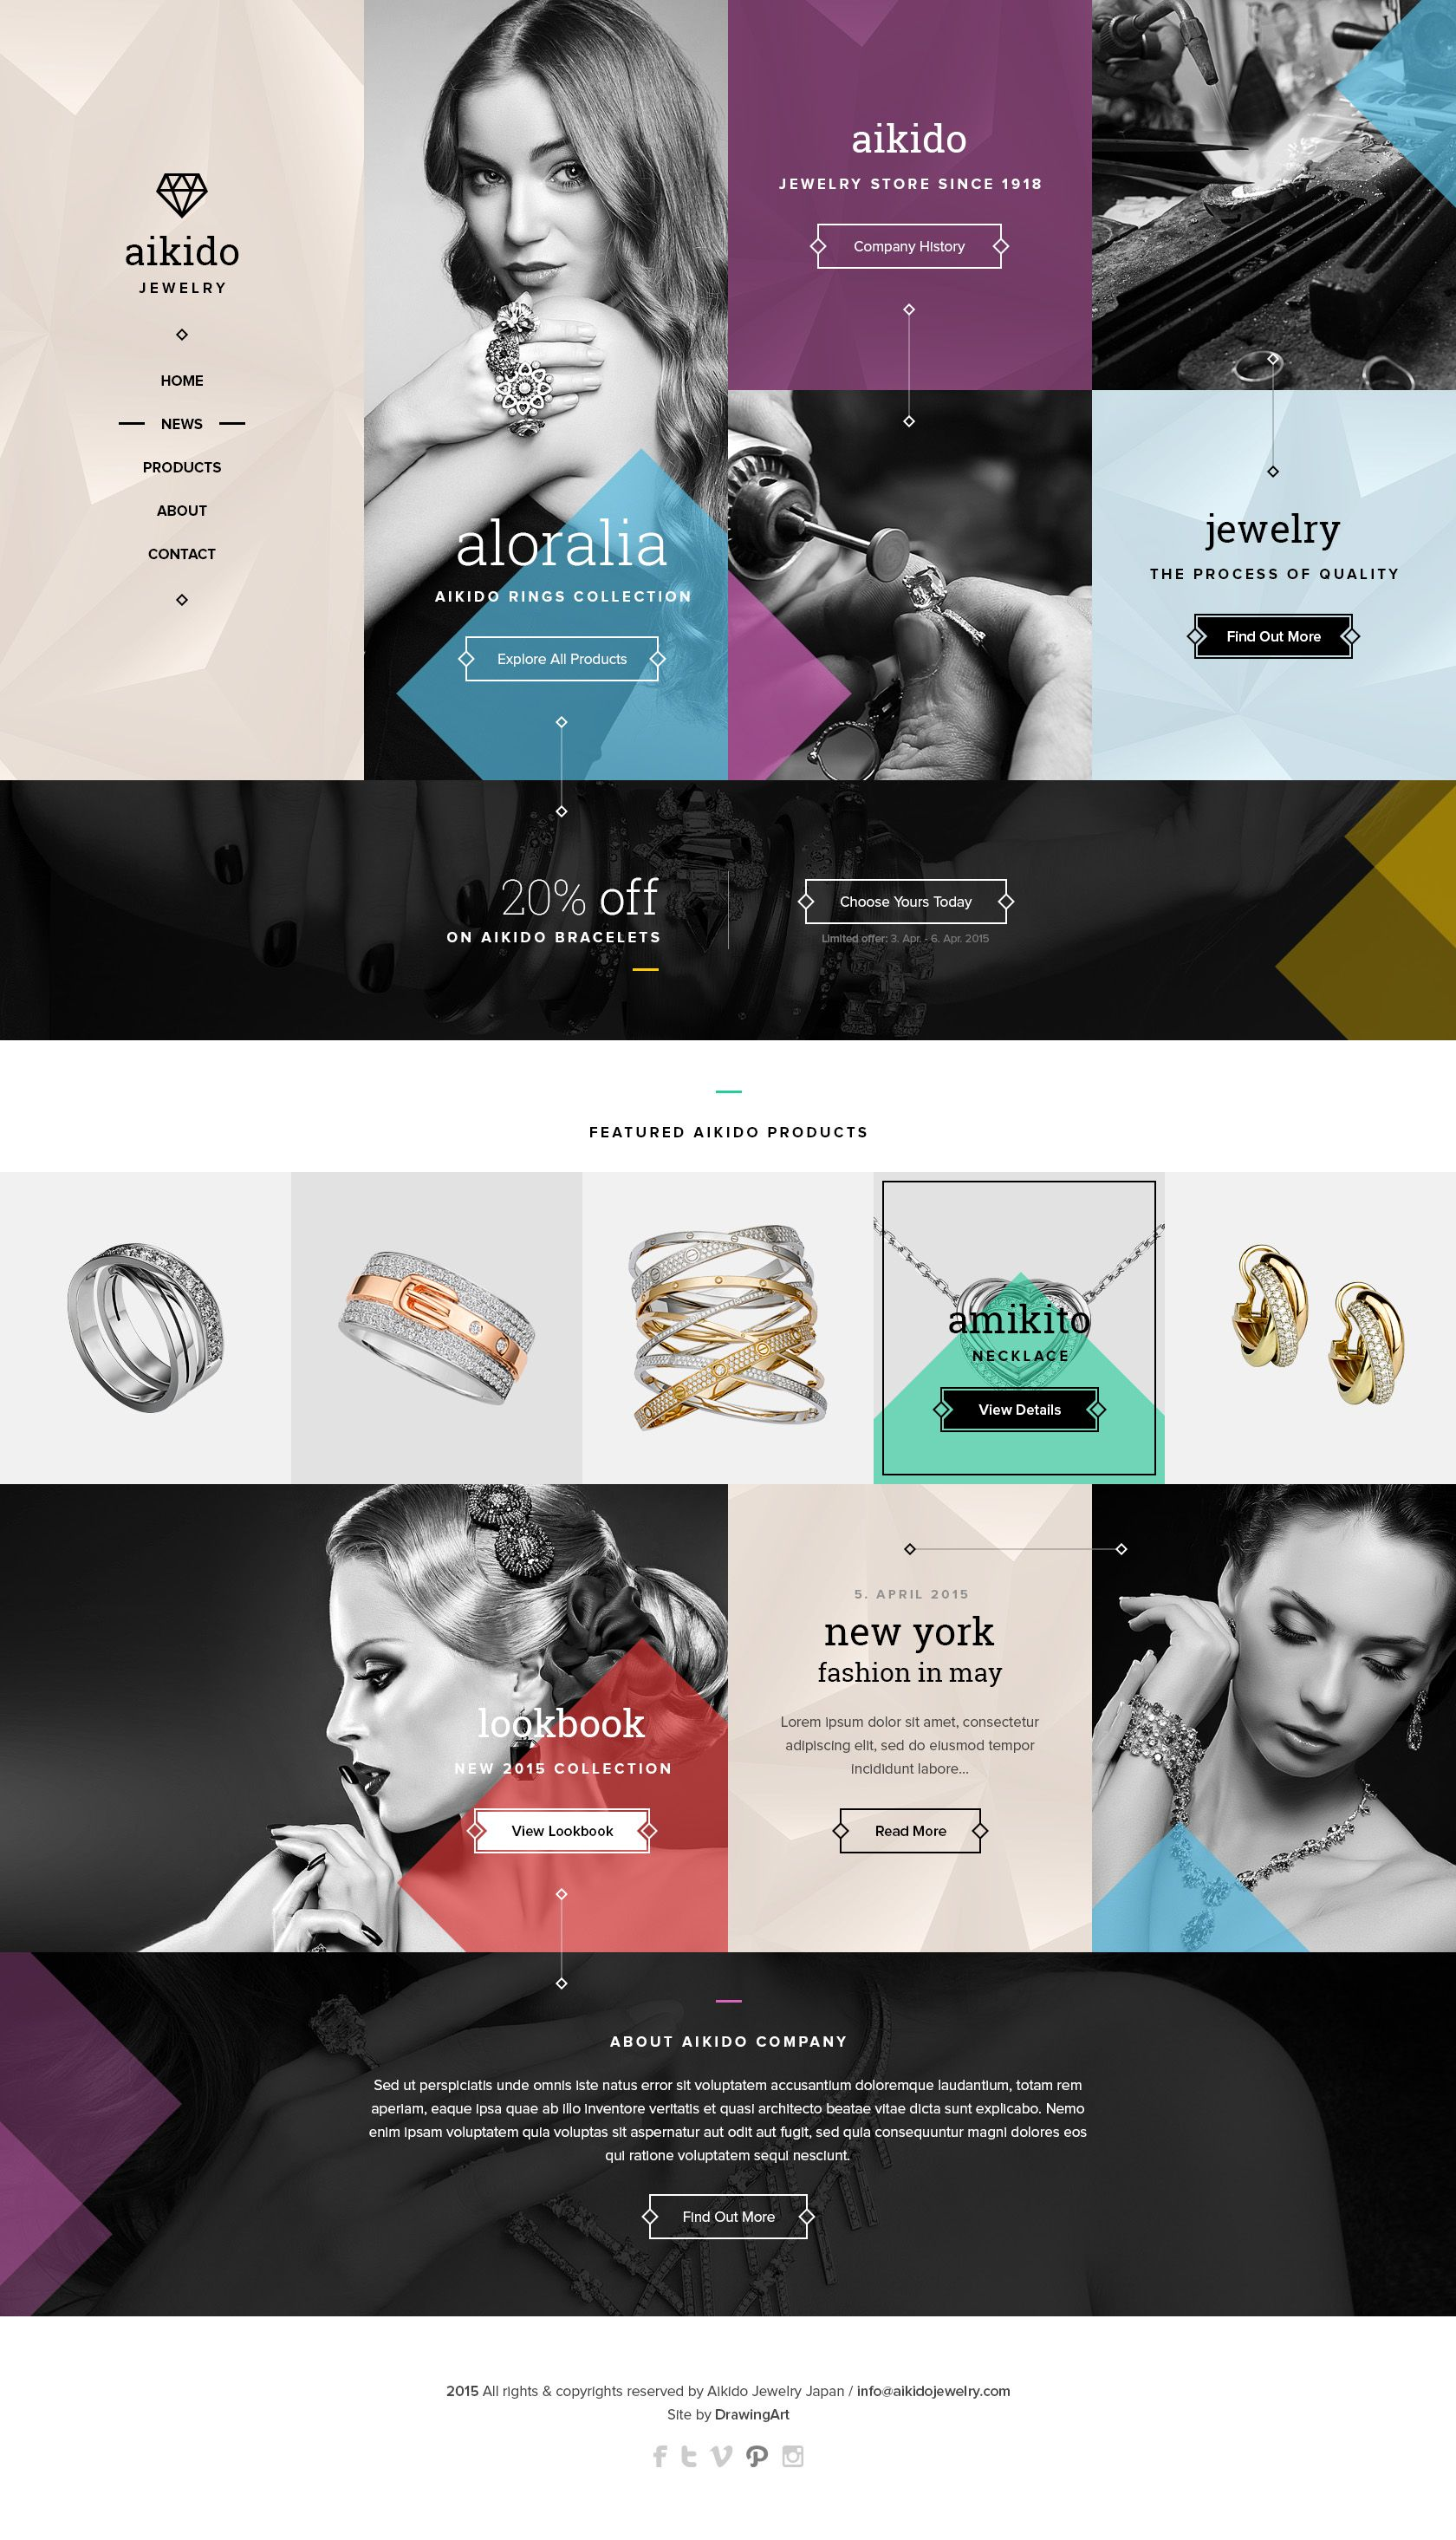 Aikido Jewelry Website Design Design Pinterest Jewelry website